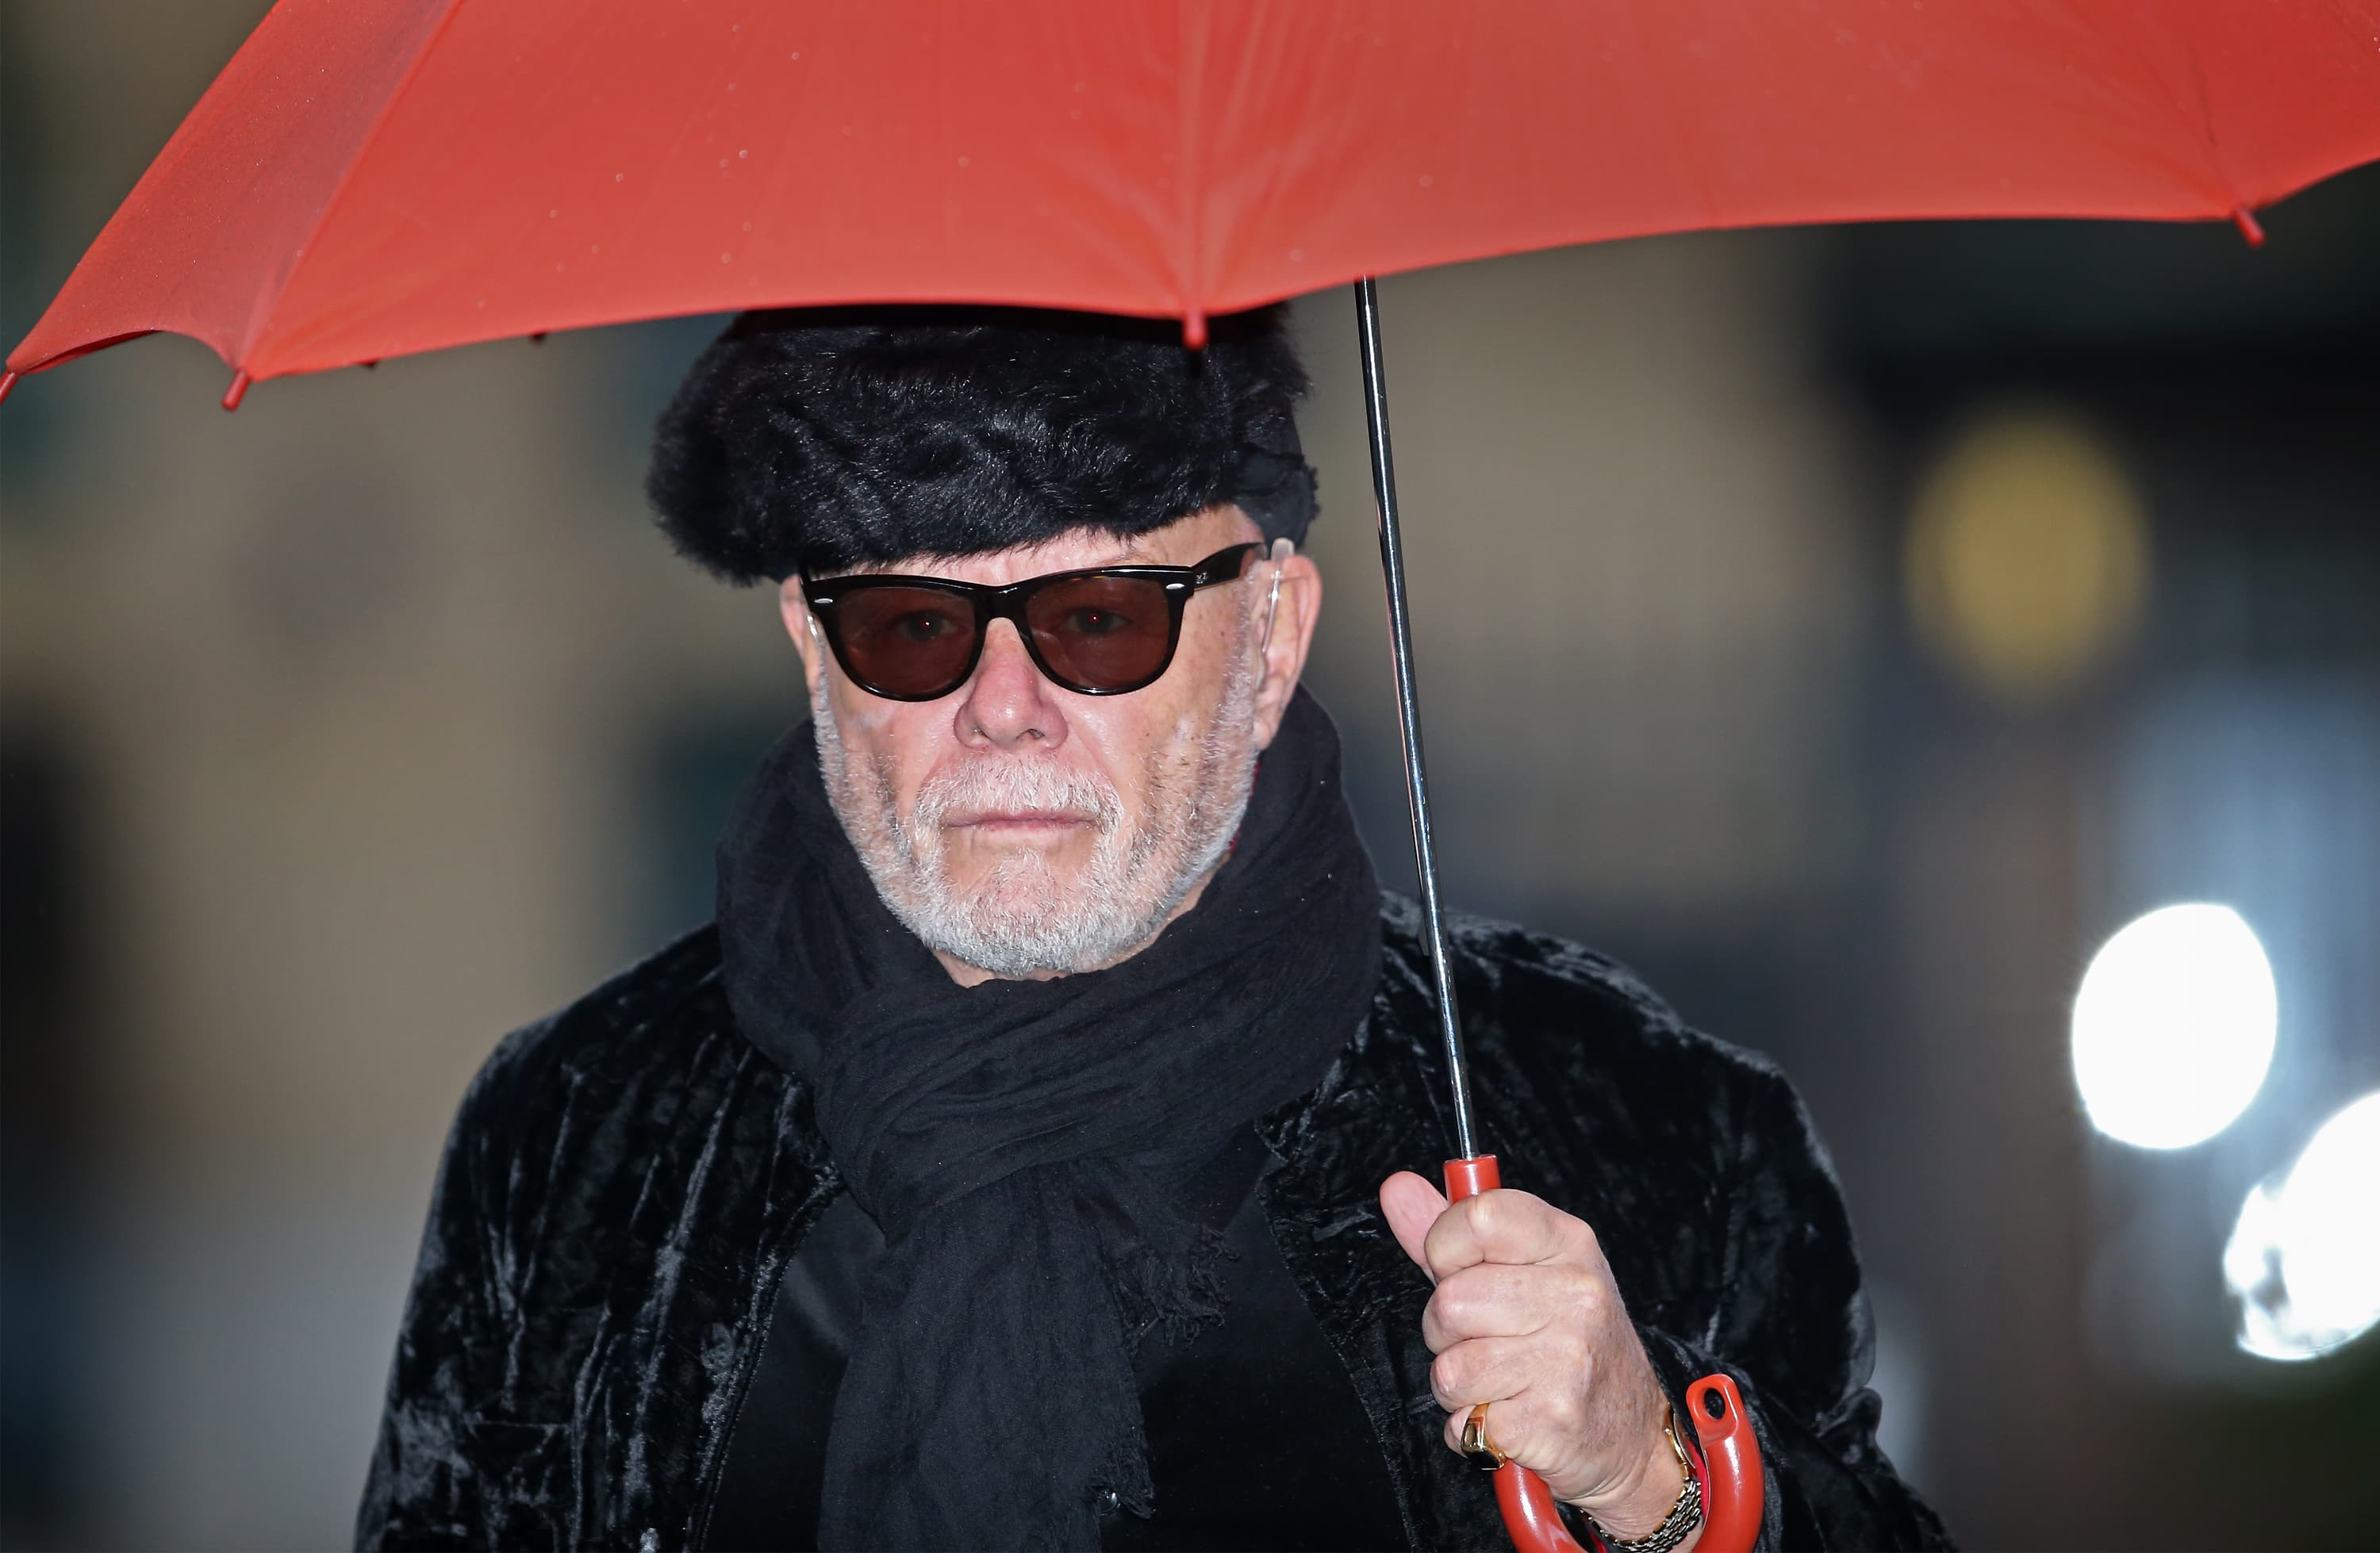 Convicted pedophile Gary Glitter will not receive music royalties from 'Joker,' report says